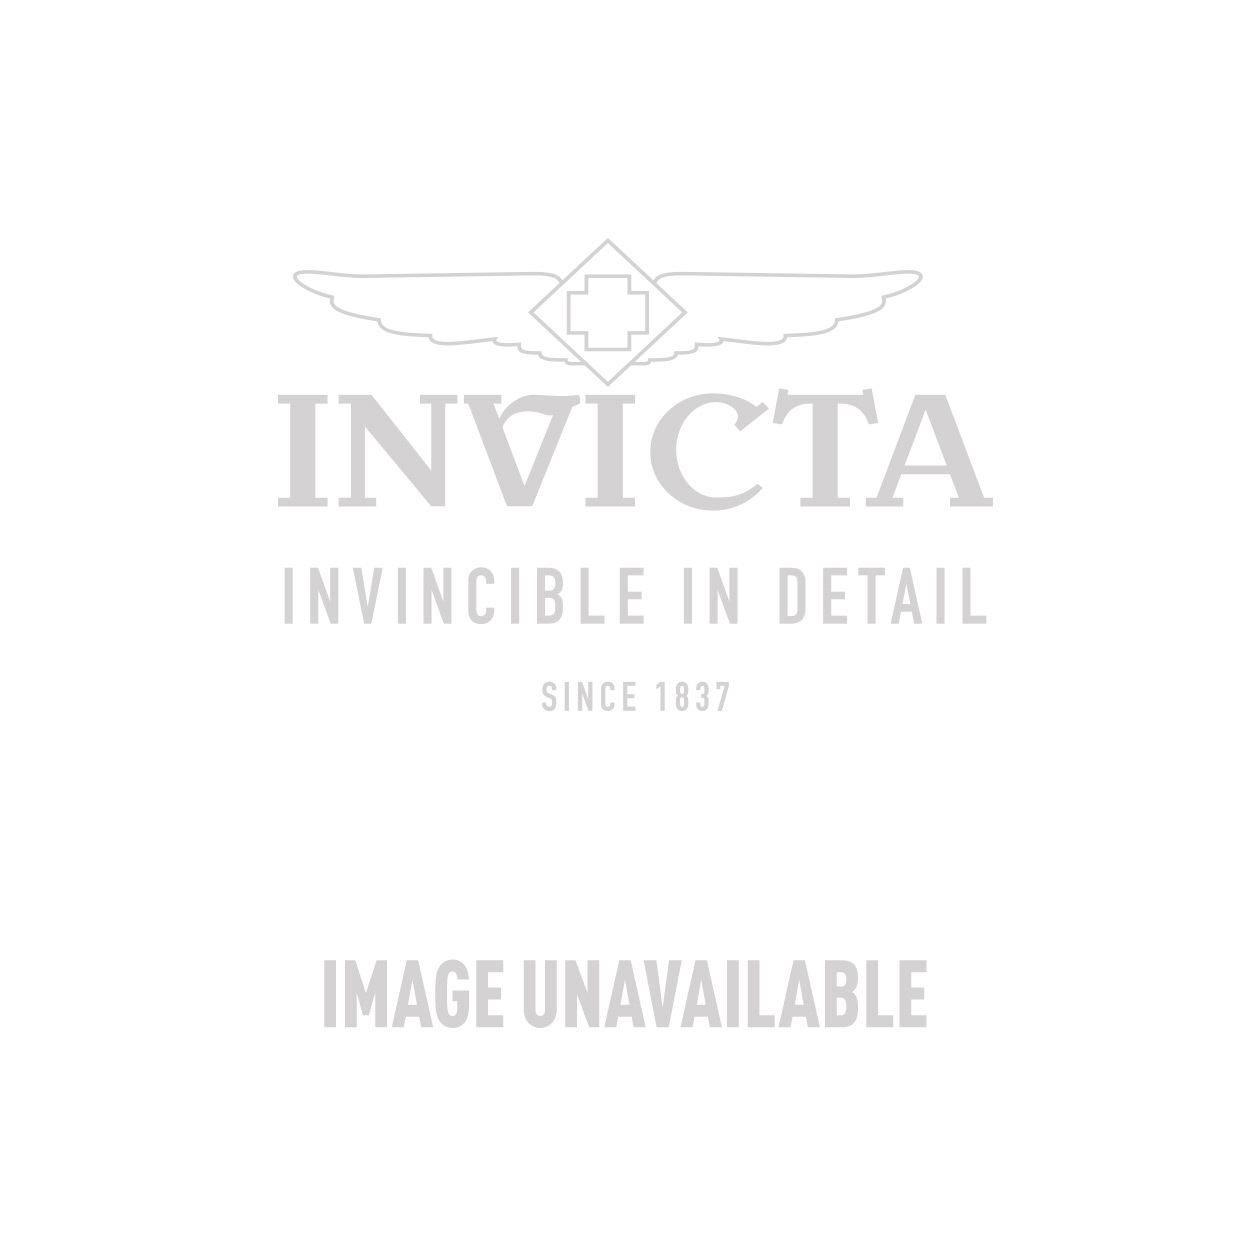 Invicta Sea Hunter  Quartz Watch - Black case with Black tone Stainless Steel band - Model 10771